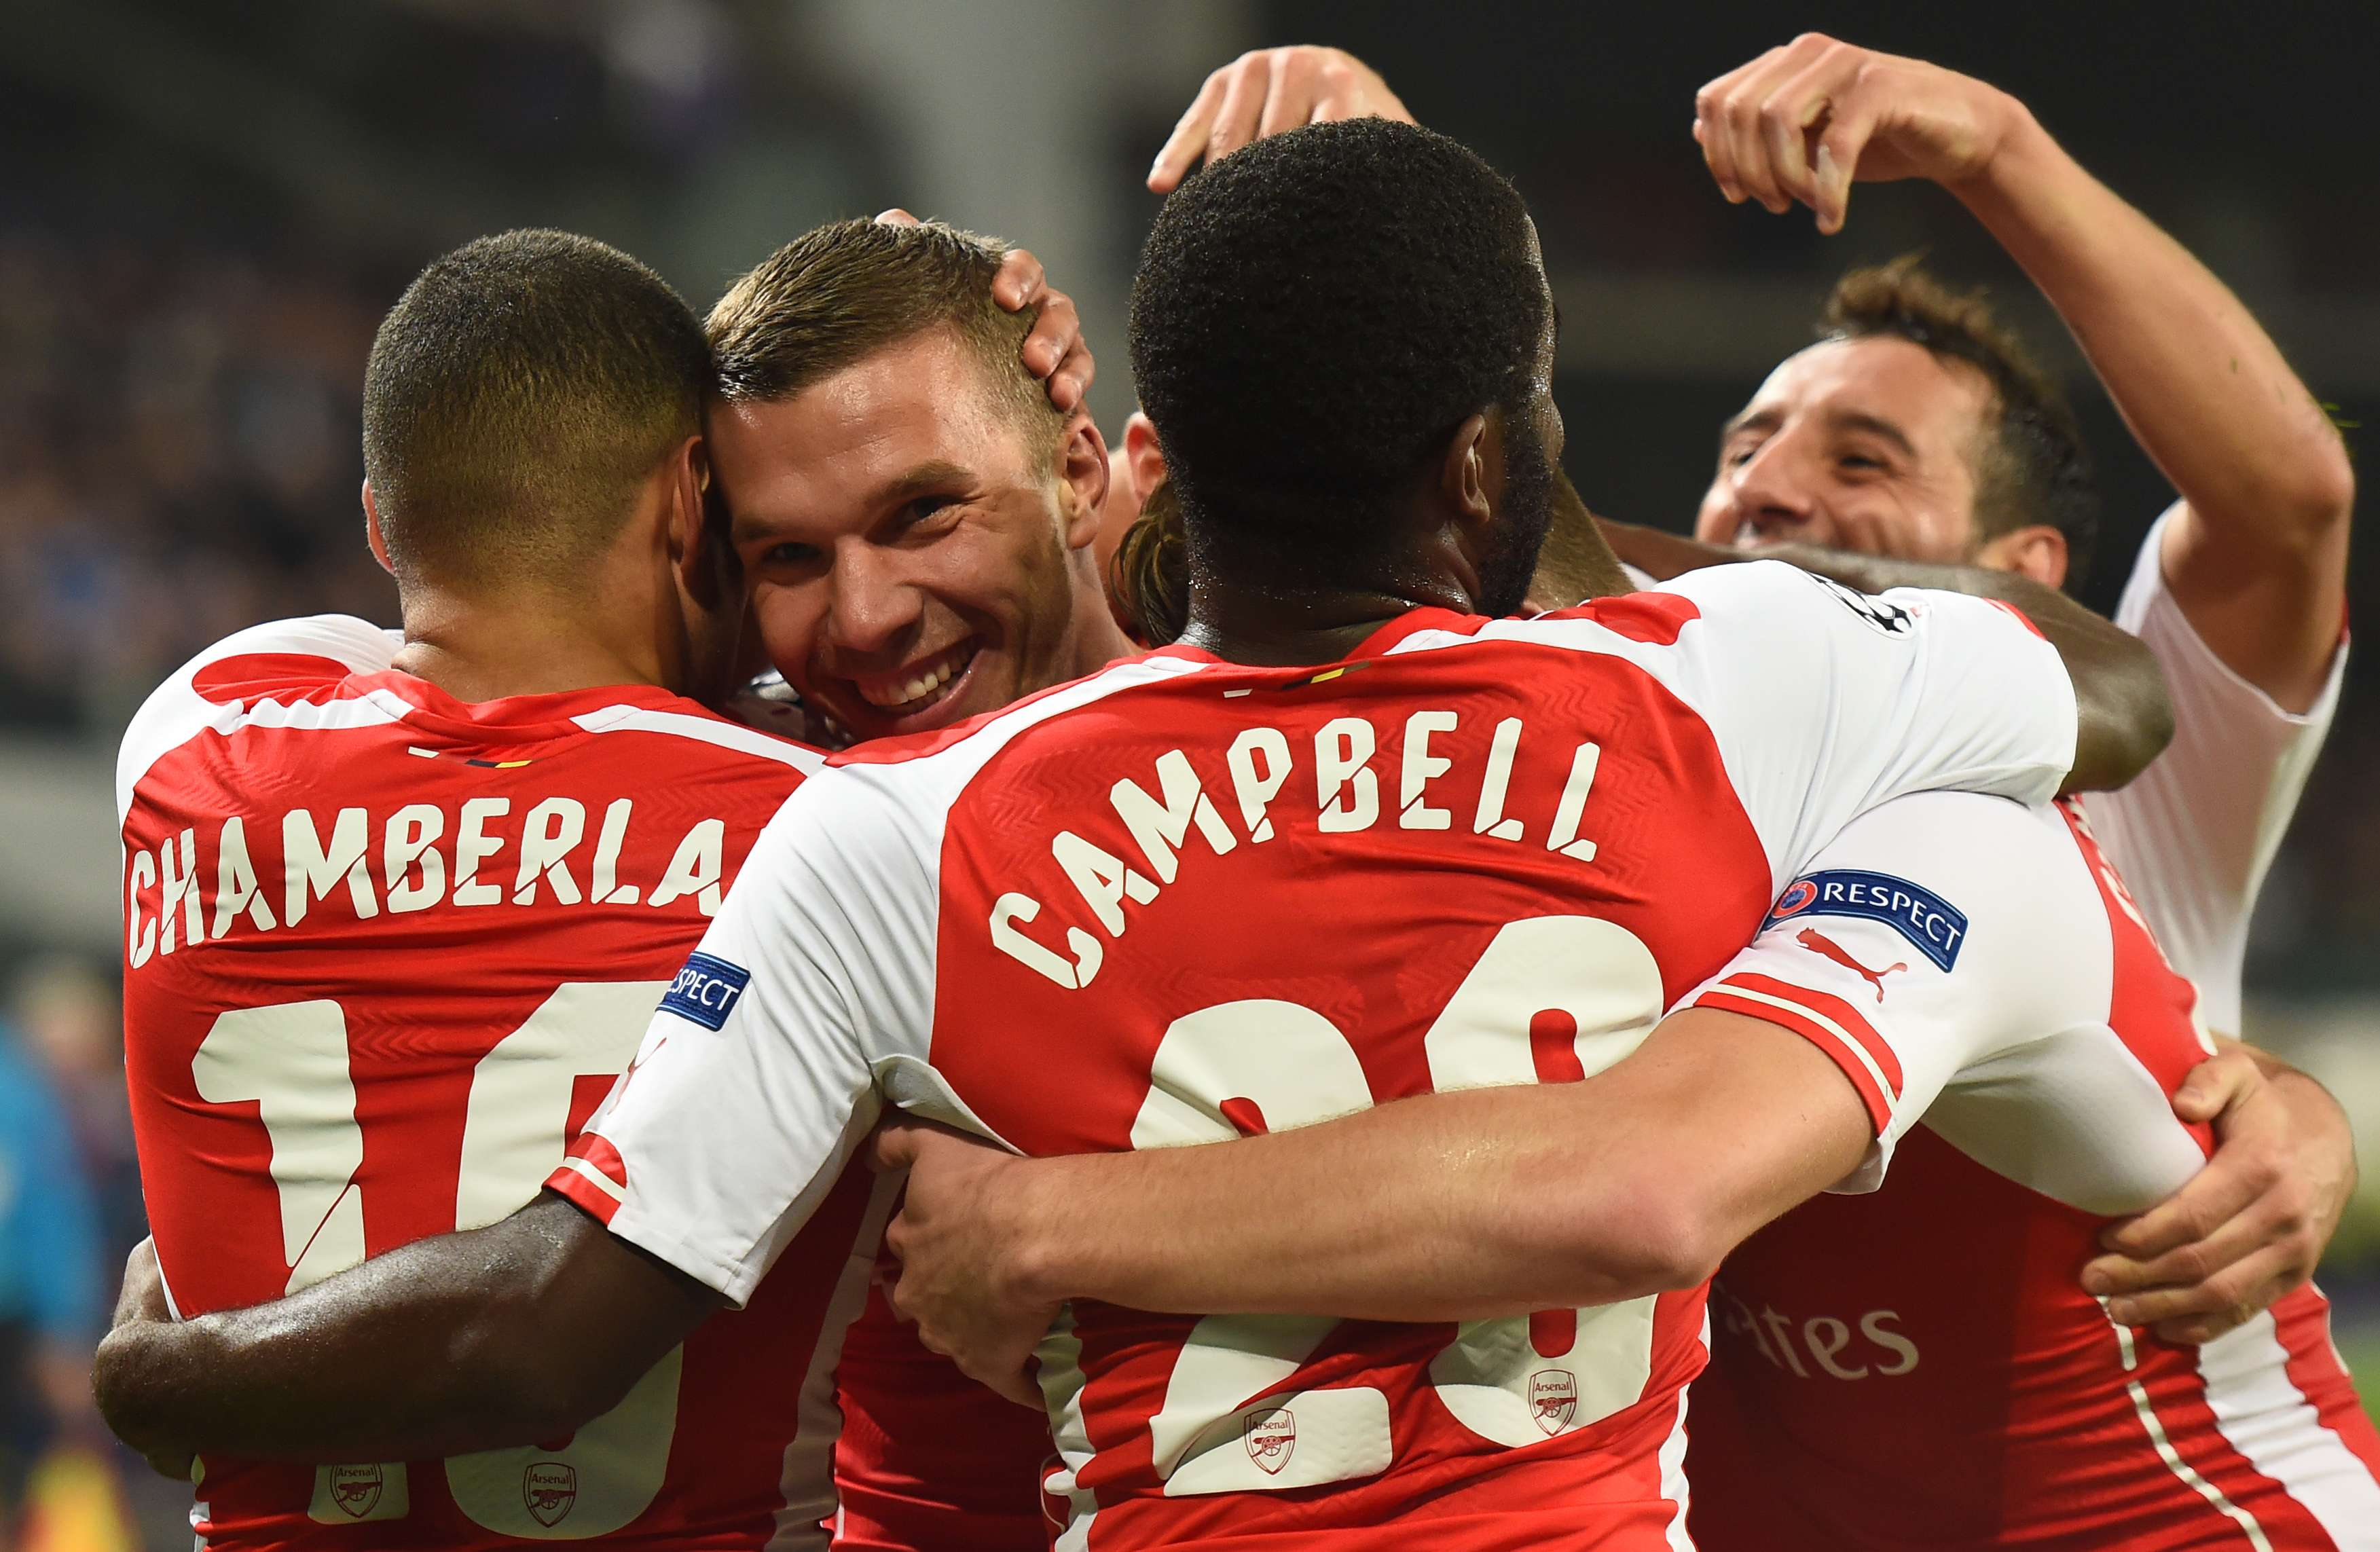 Arsenal remonta y vence 2-1 al Anderlecht en la Champions. Foto: AFP